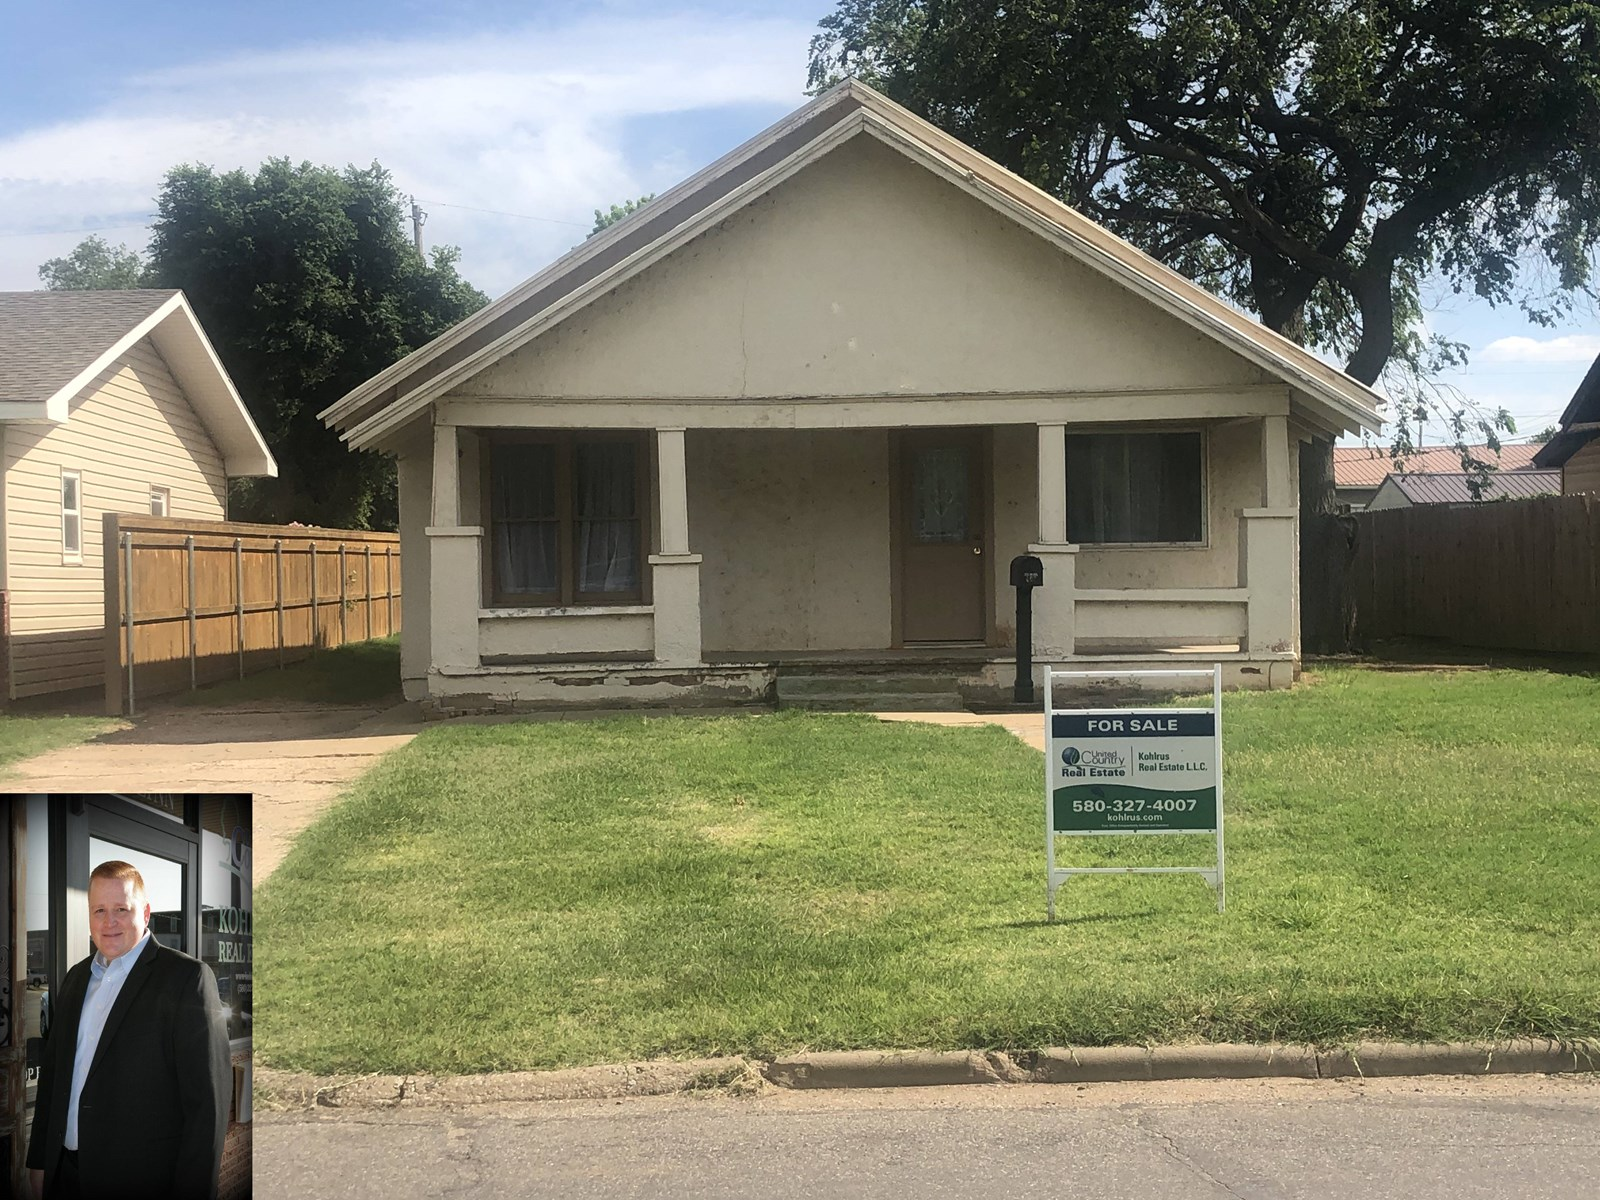 Alva, OK Investment or Great Family Home